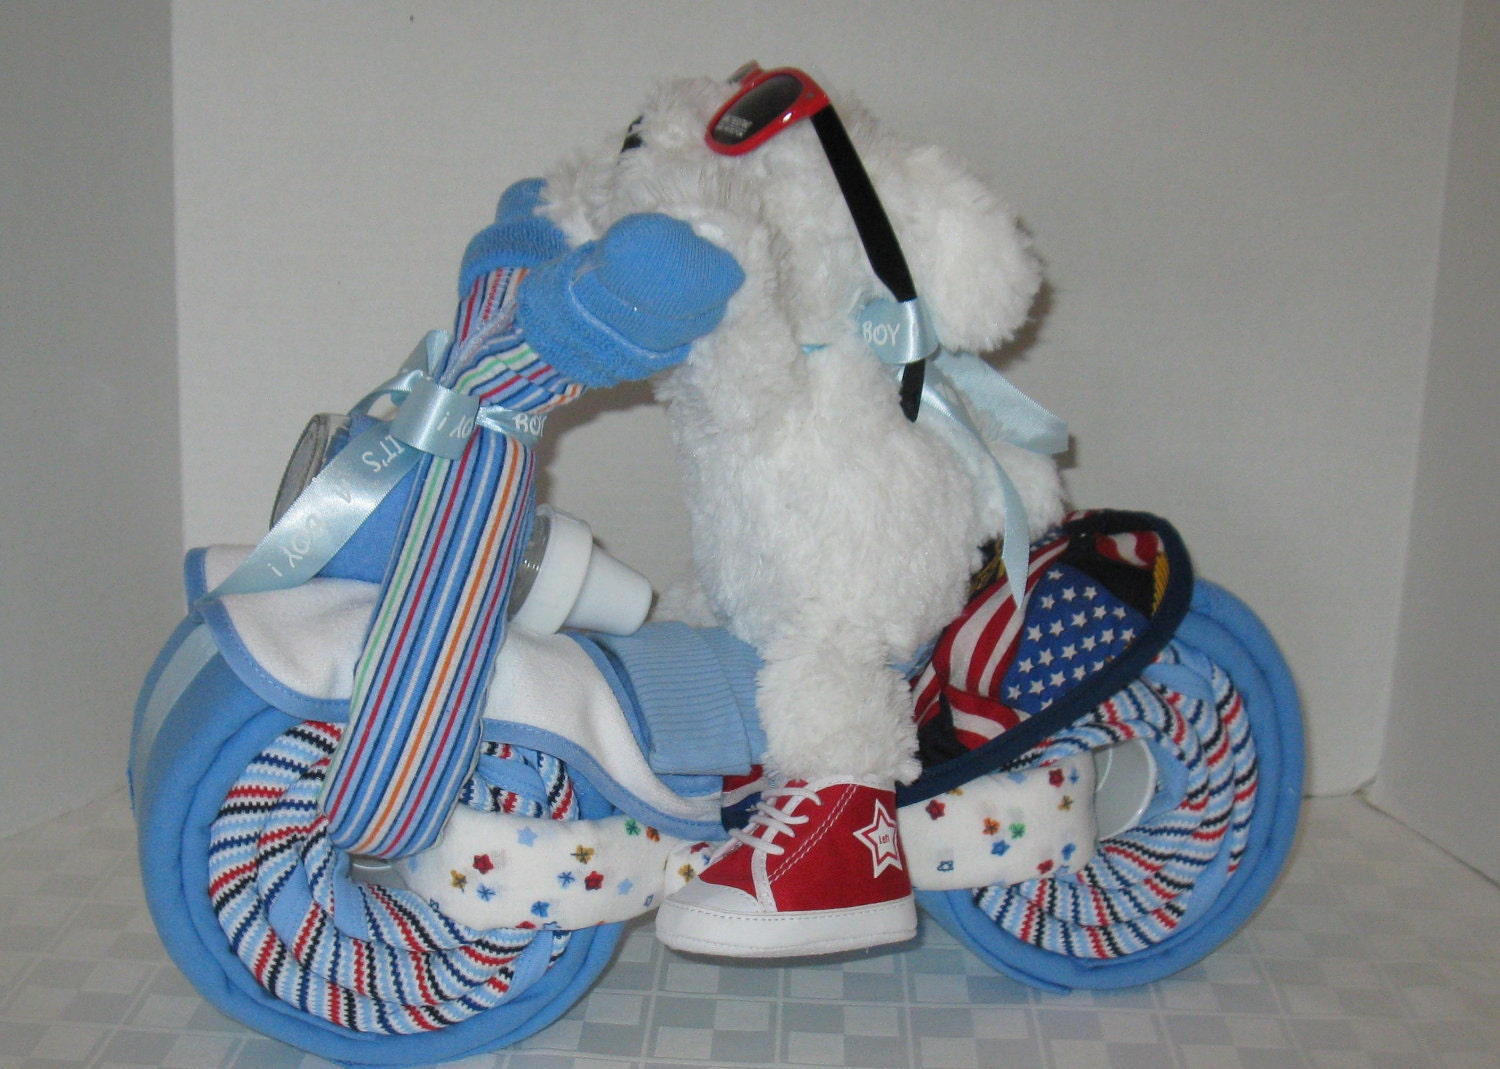 Baby Shower Gift Ideas Boy : Motorcycle bike diaper cake baby shower gift centerpiece